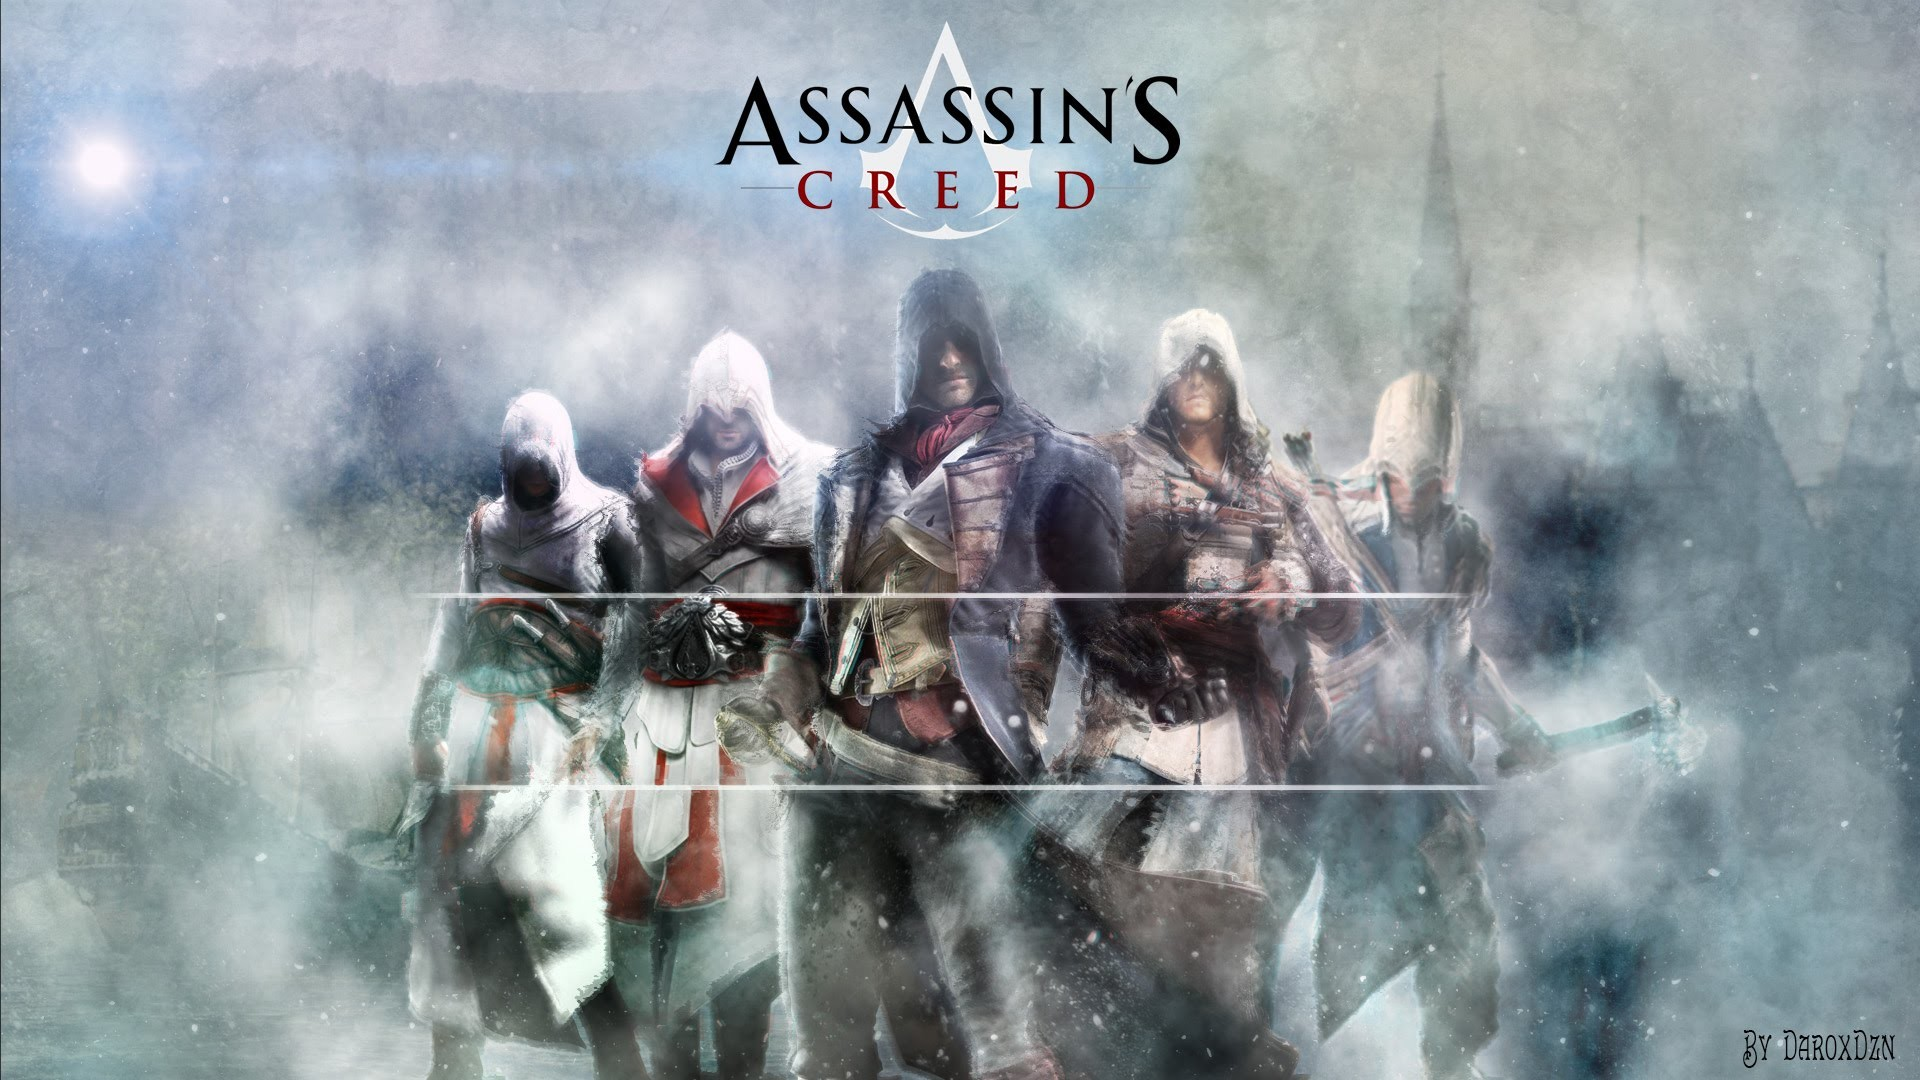 1920x1080 Assassin's Creed Wallpaper 1080p Full HD [FREE DOWNLOAD] | DaroxDzn